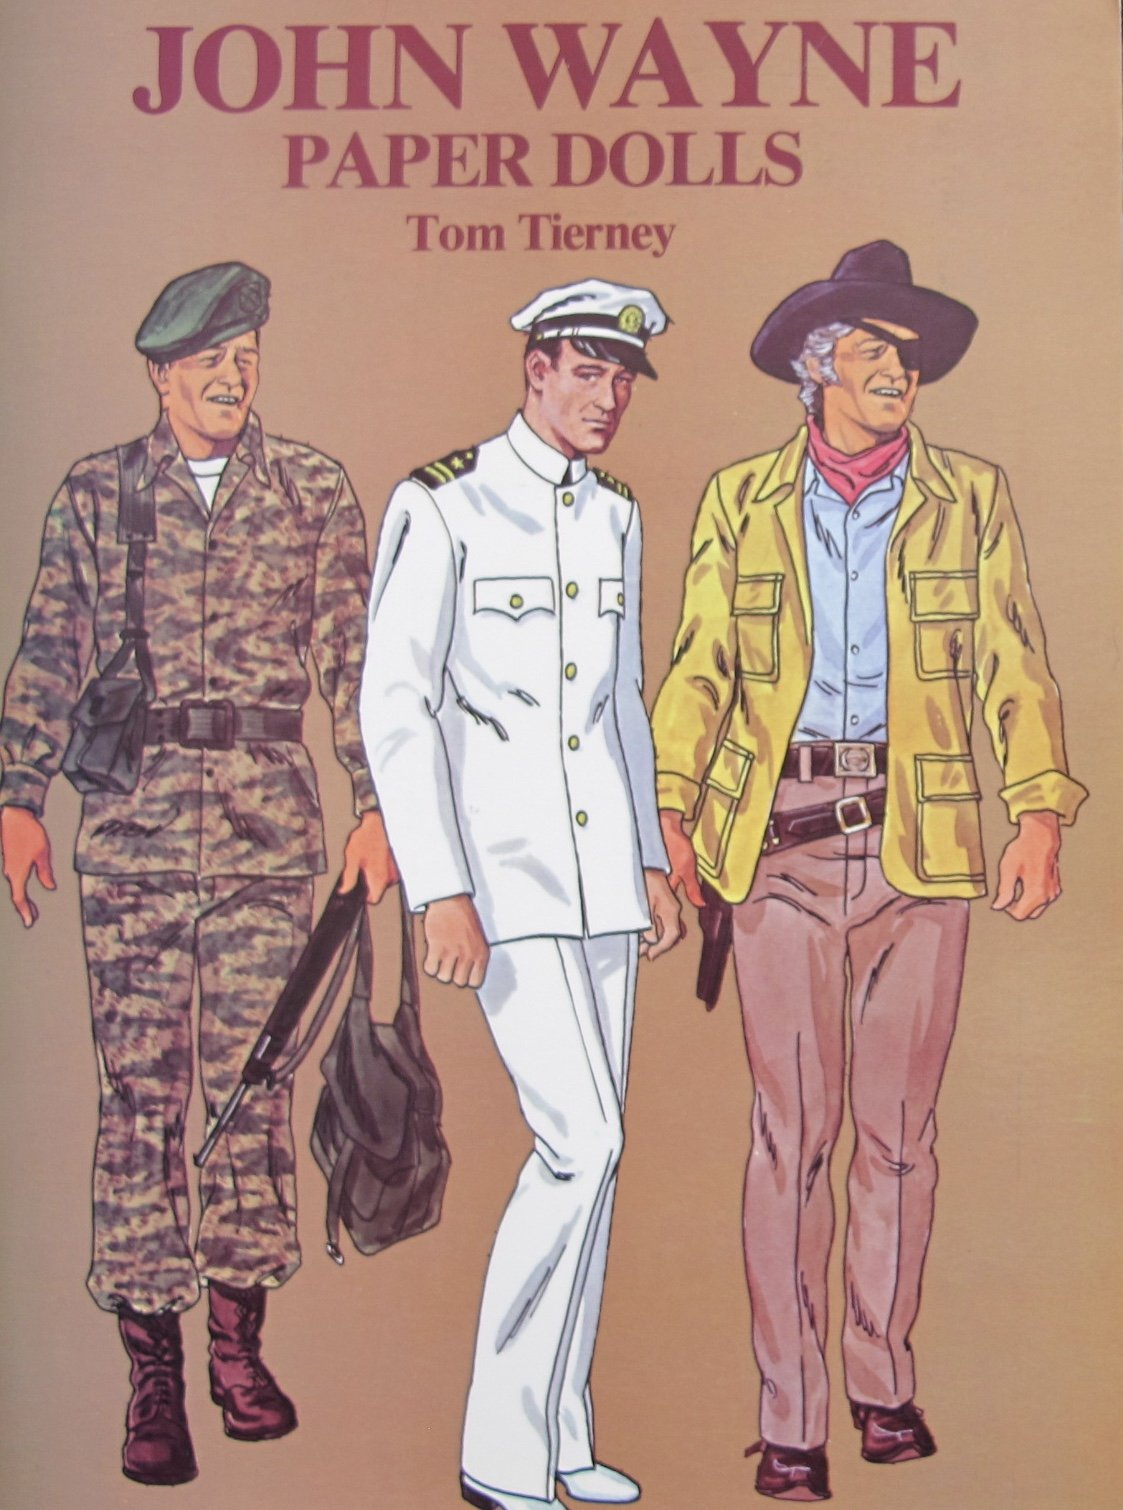 Tom Tierney JOHN WAYNE PAPER DOLLS Book (UNCUT) w 2 Card Stock DOLLS and 31 Card Stock COSTUMES (1980) by Tom Tierney, Dover Publications (Image #1)